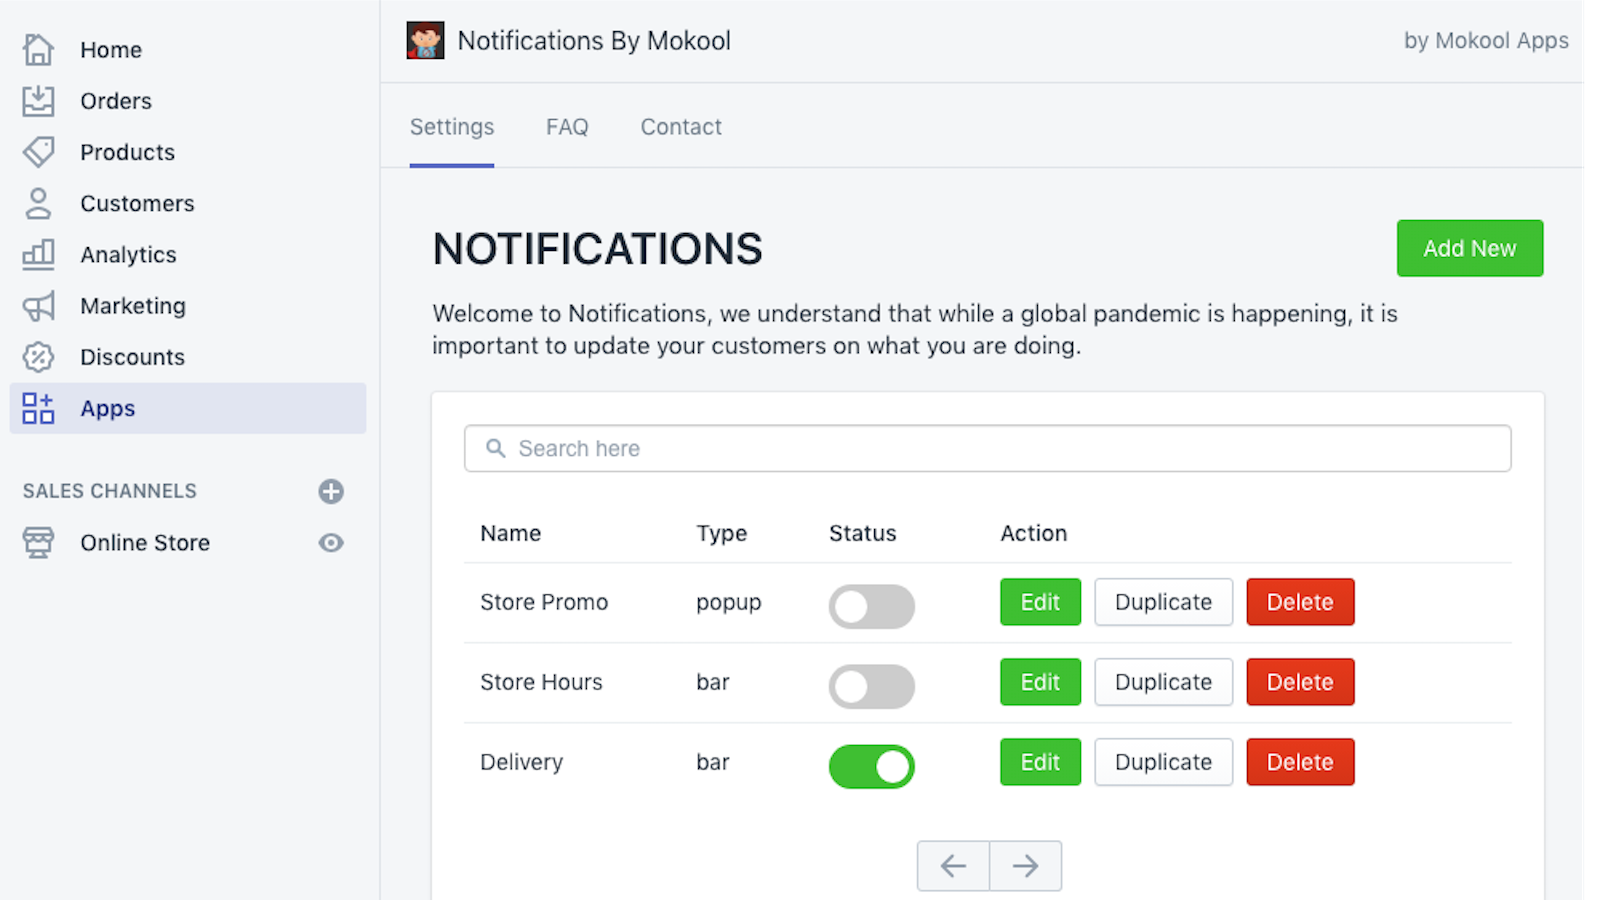 Easy to use Notifications menu